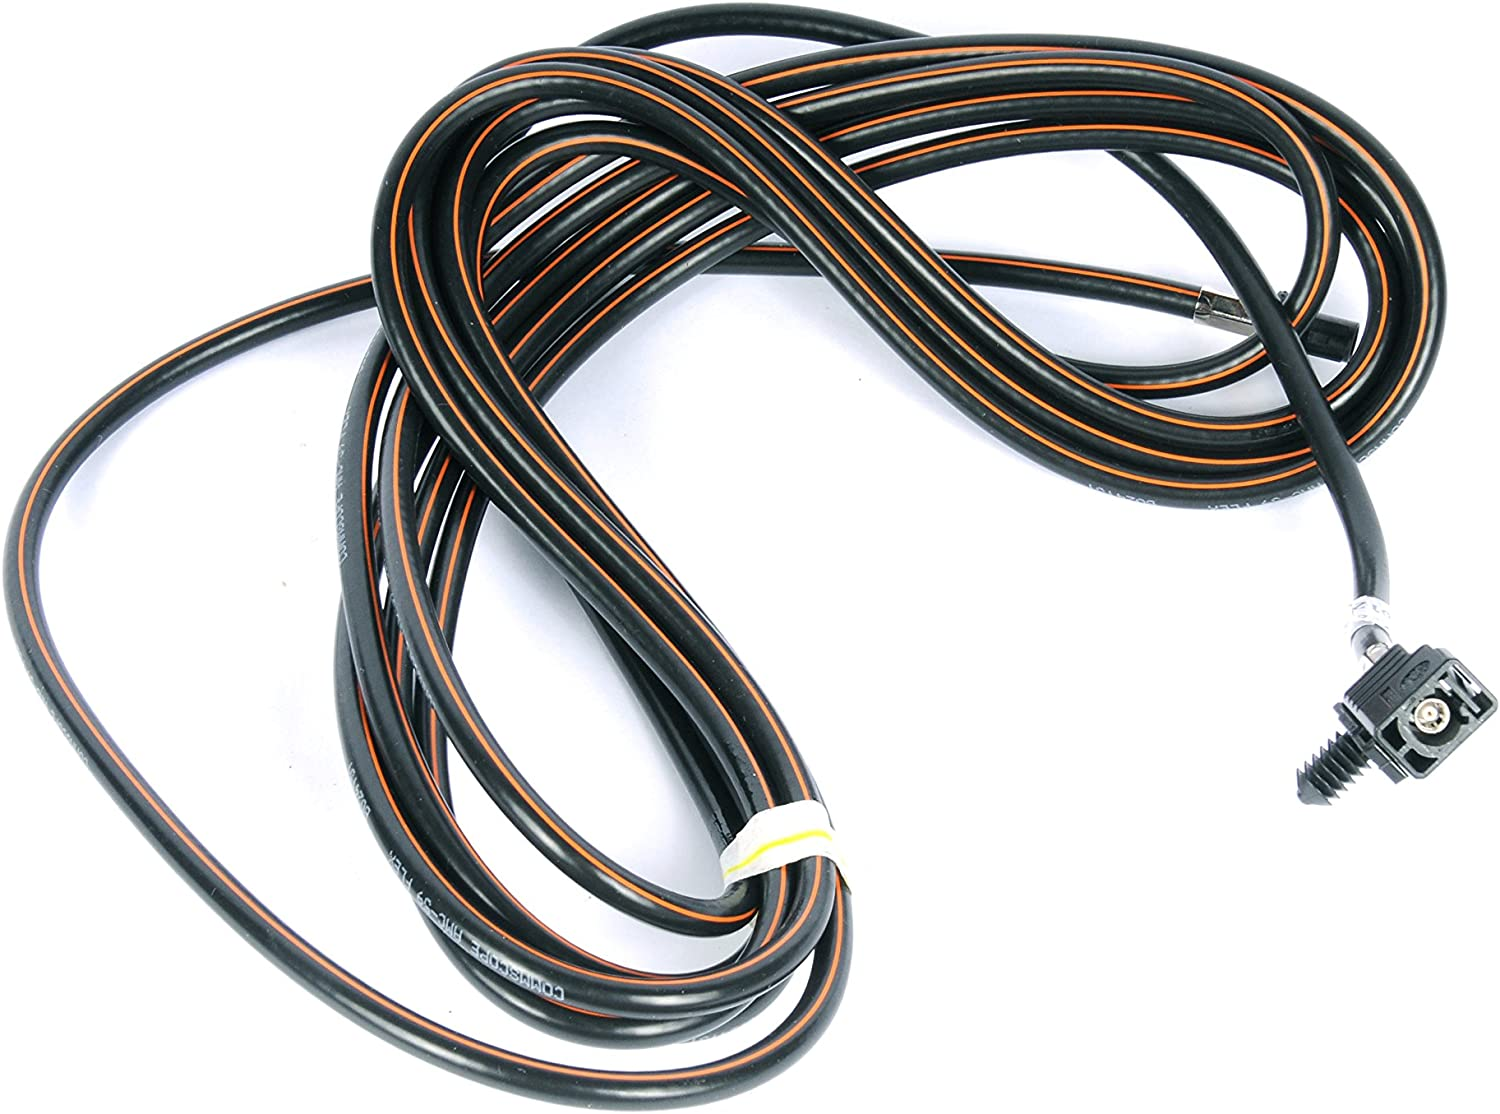 ACDelco 19119239 GM Original Equipment Audio and Video Module Body Cable